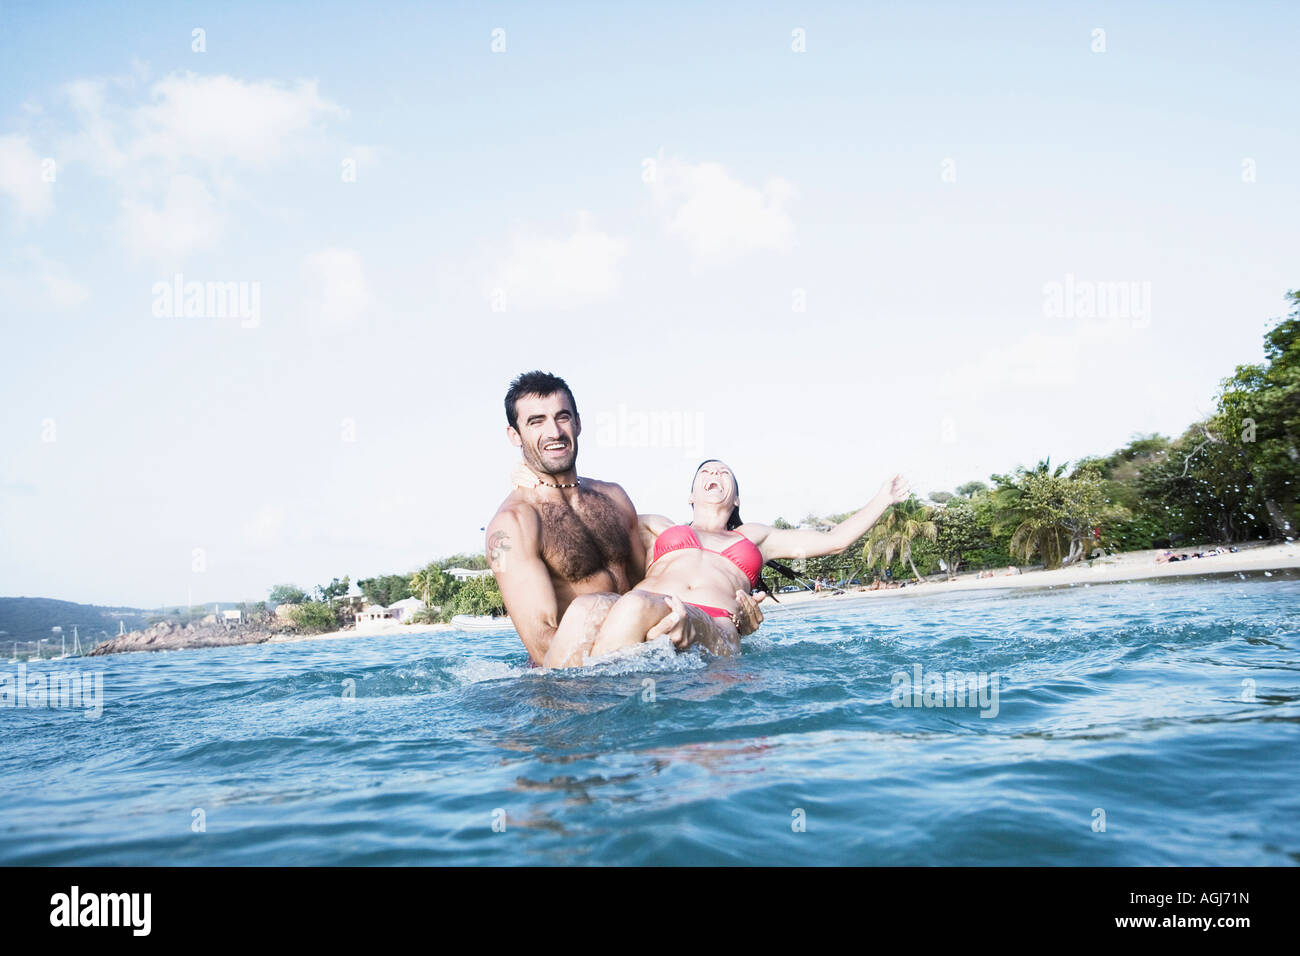 Mid adult man carrying a mid adult woman in water - Stock Image